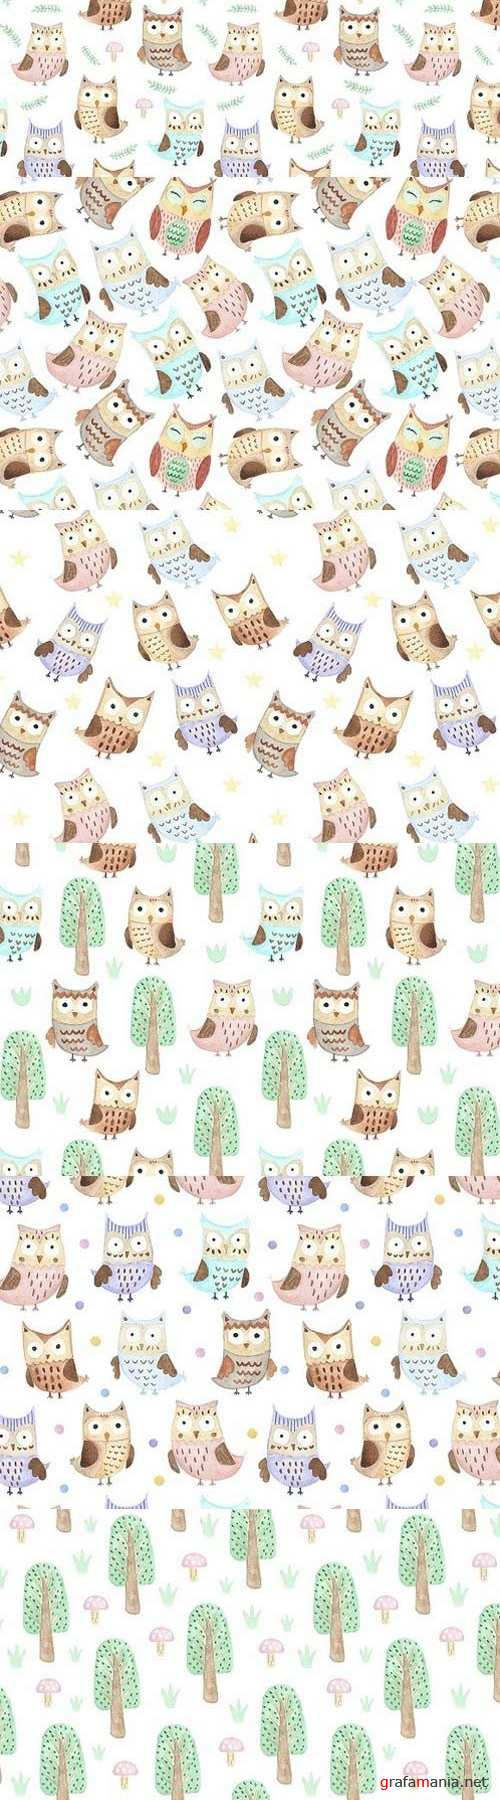 Watercolor Owls: patterns & cards 882340